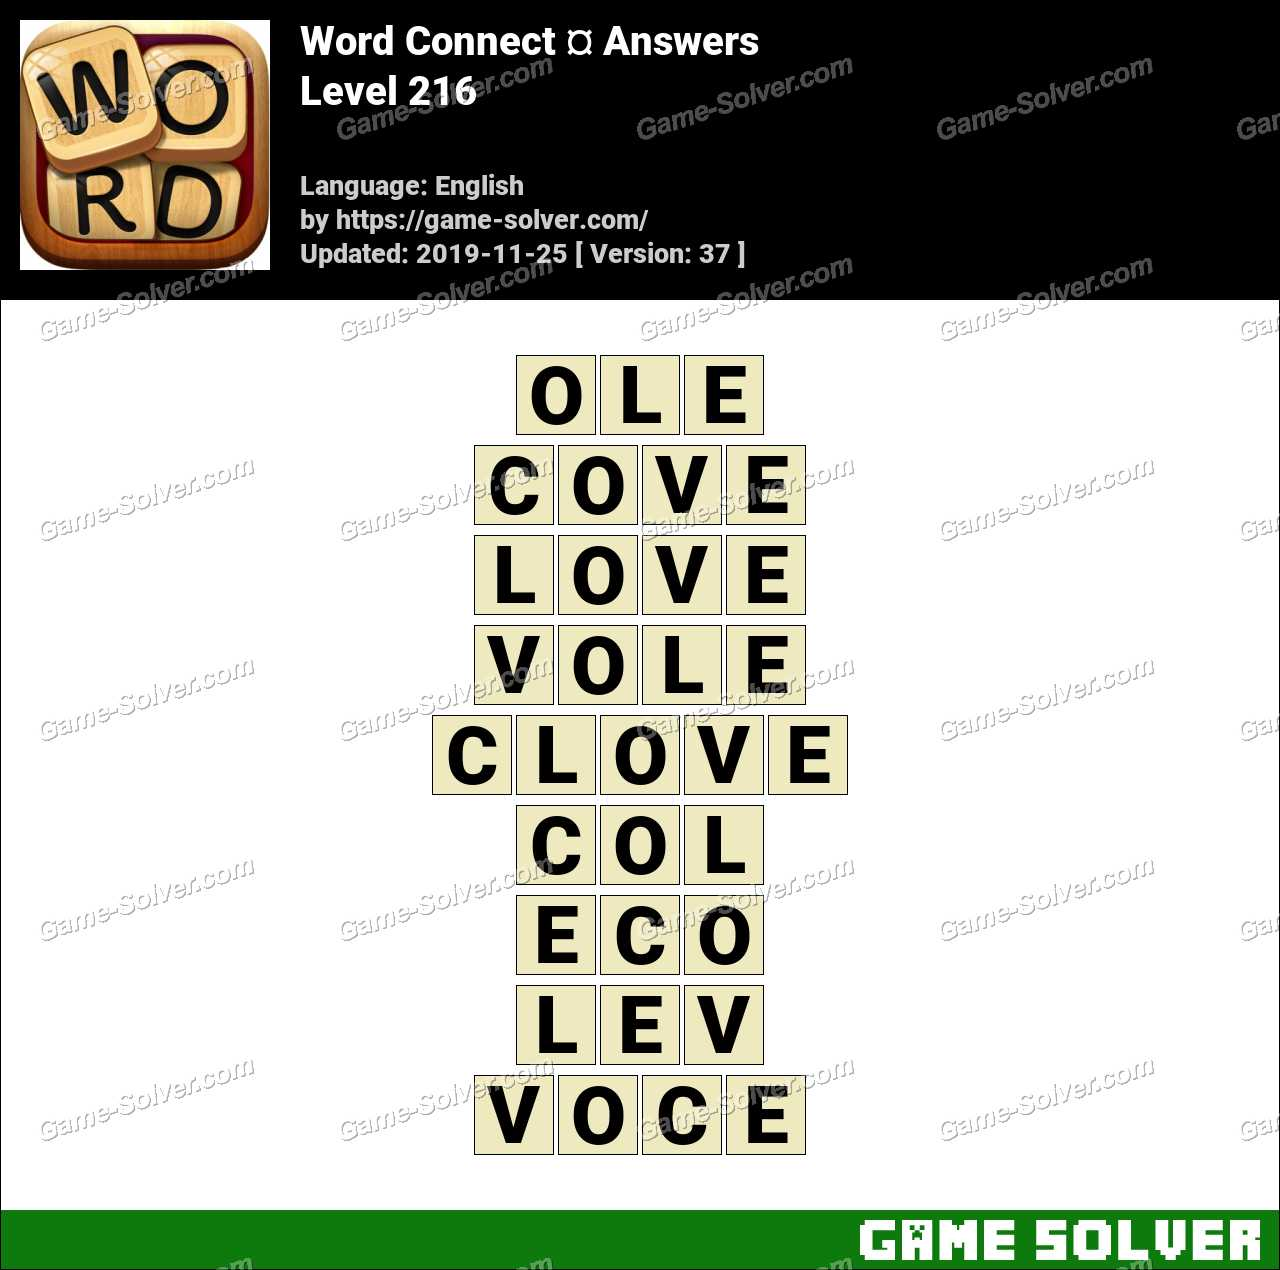 Word Connect Level 216 Answers